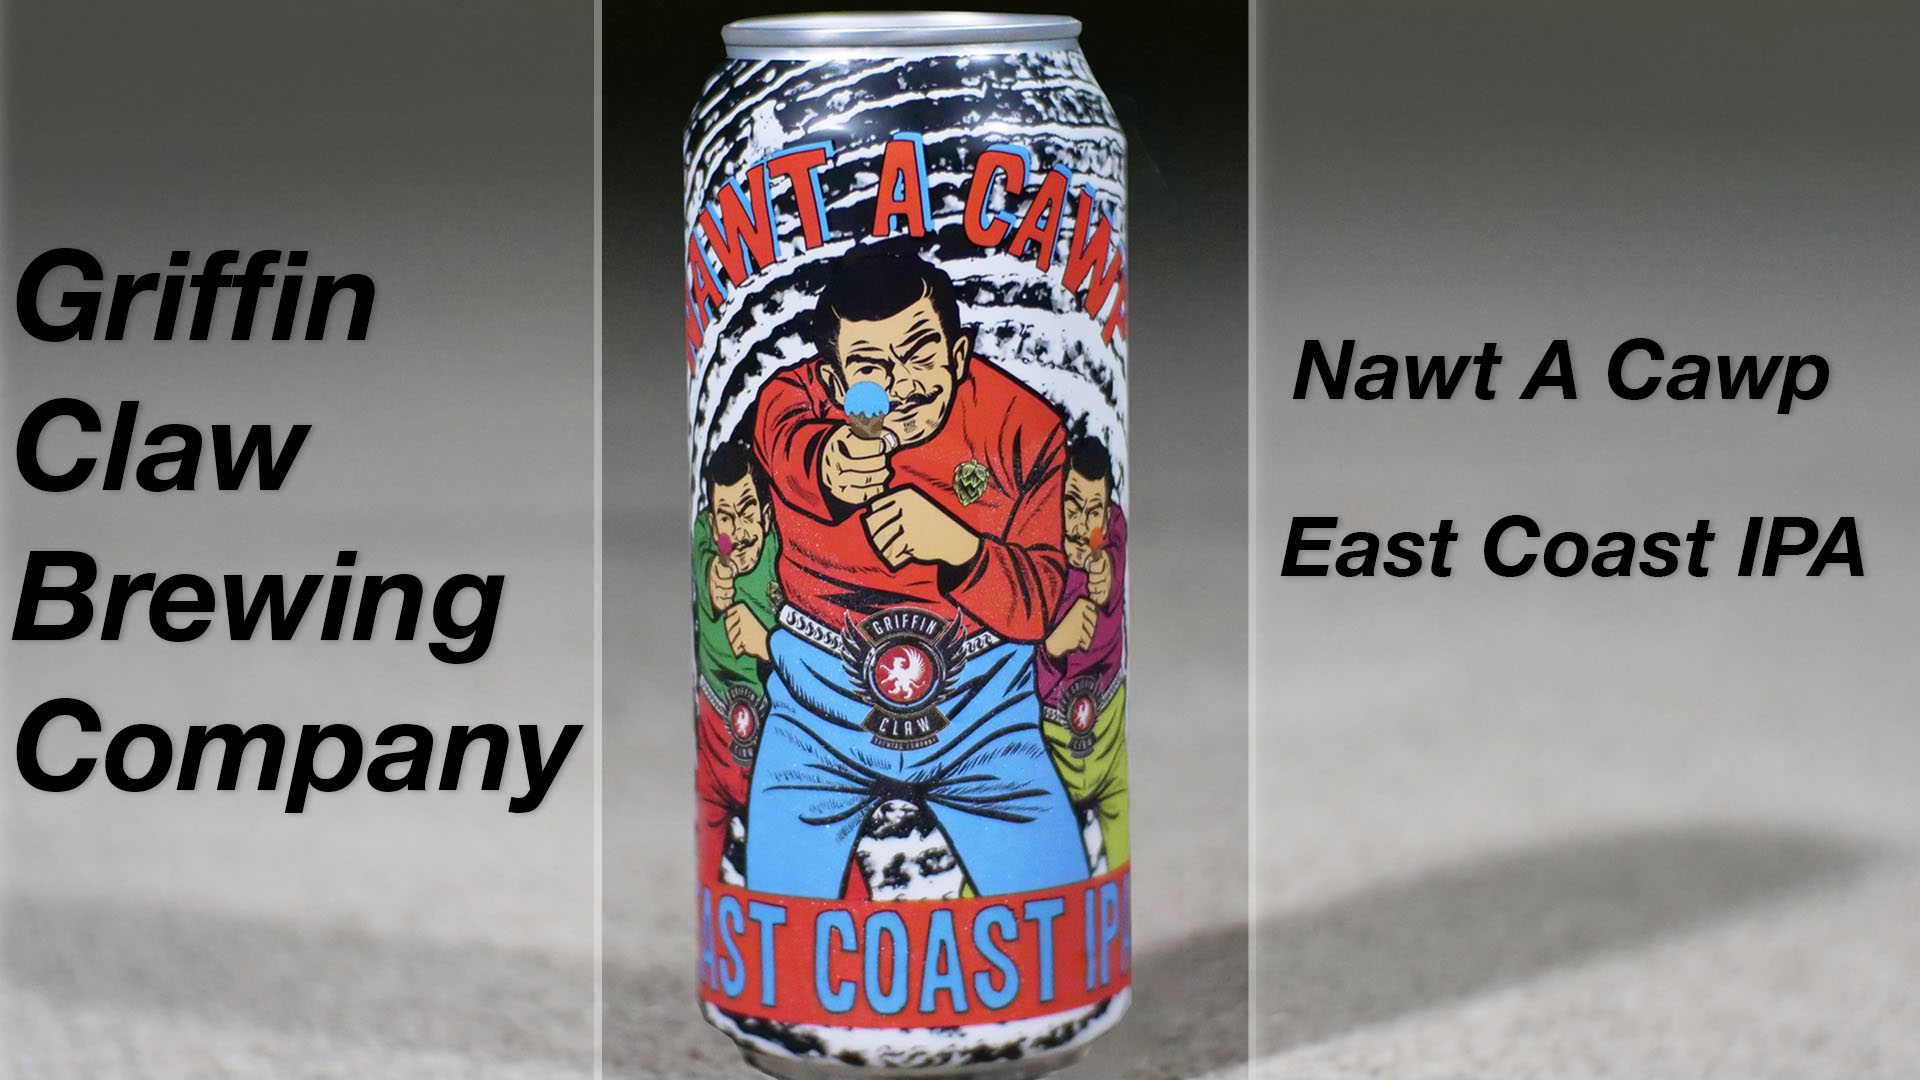 Griffin Claw Brewing Company's Nawt a Cawp Review